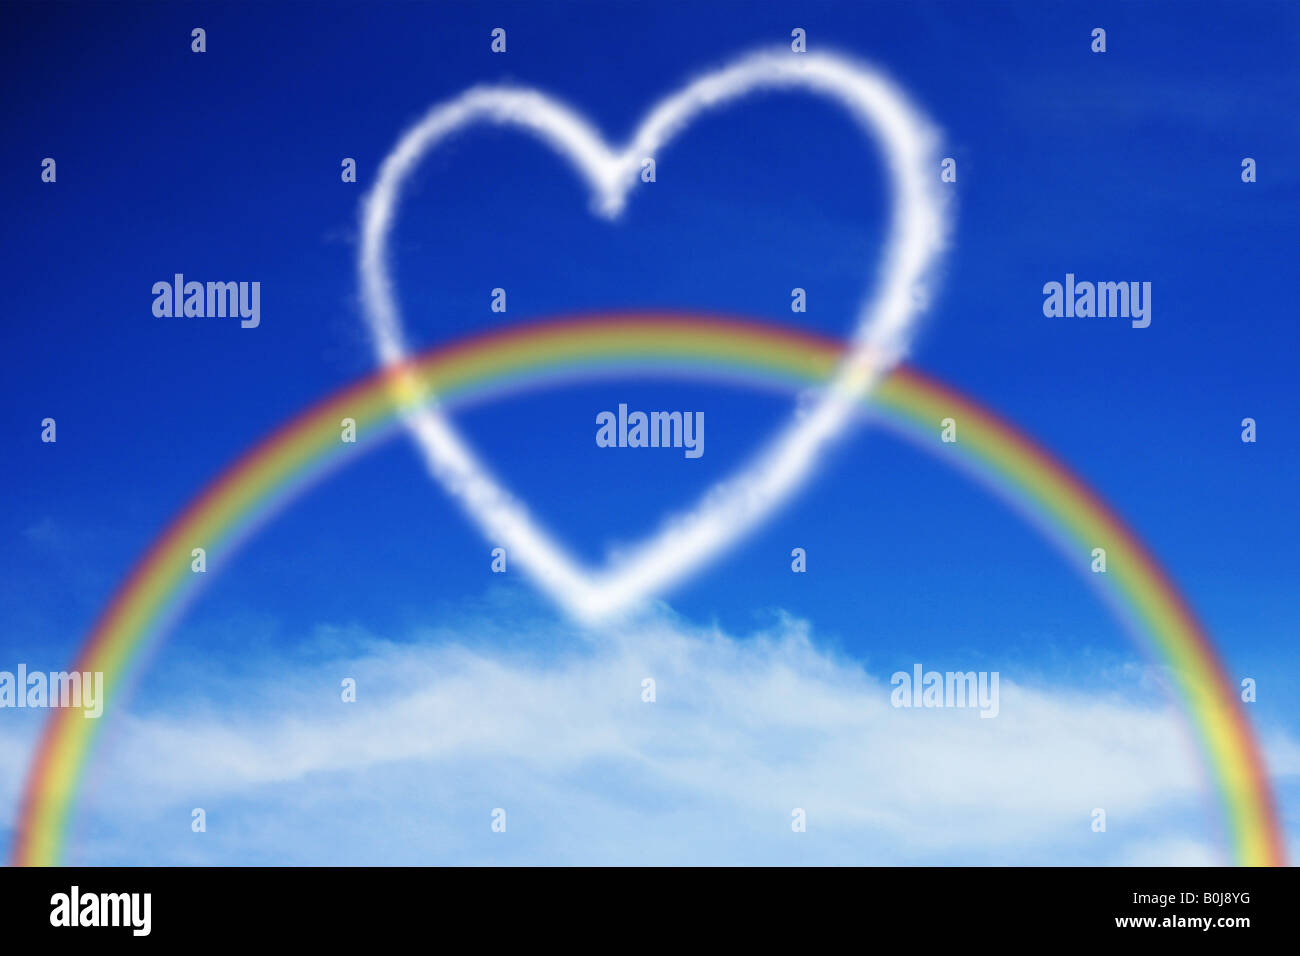 Rainbow going trough a heart shaped cloud in the bright blue summers sky - Stock Image